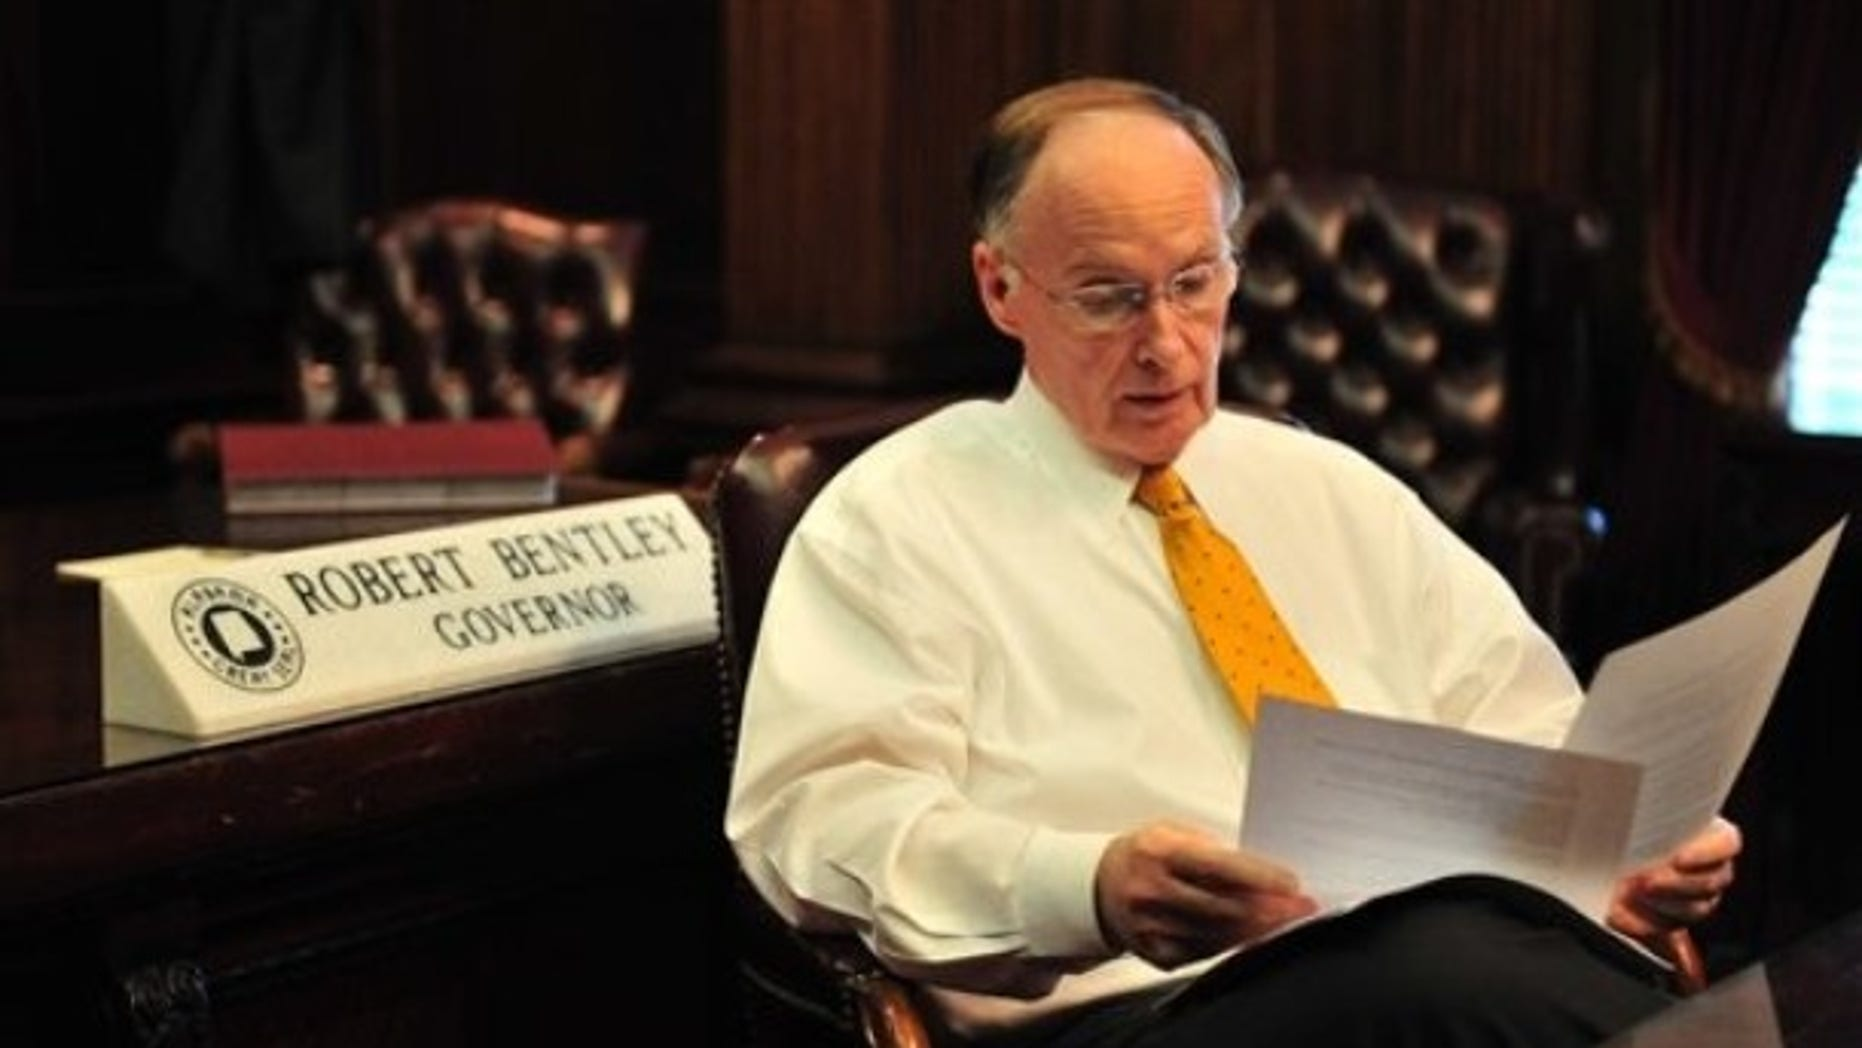 Alabama Gov. Robert Bentley looks over his State of the State speech, Monday, Feb 28, 2011. in Montgomery, Ala. at his office in the historic Alabama State Capitol. (AP)